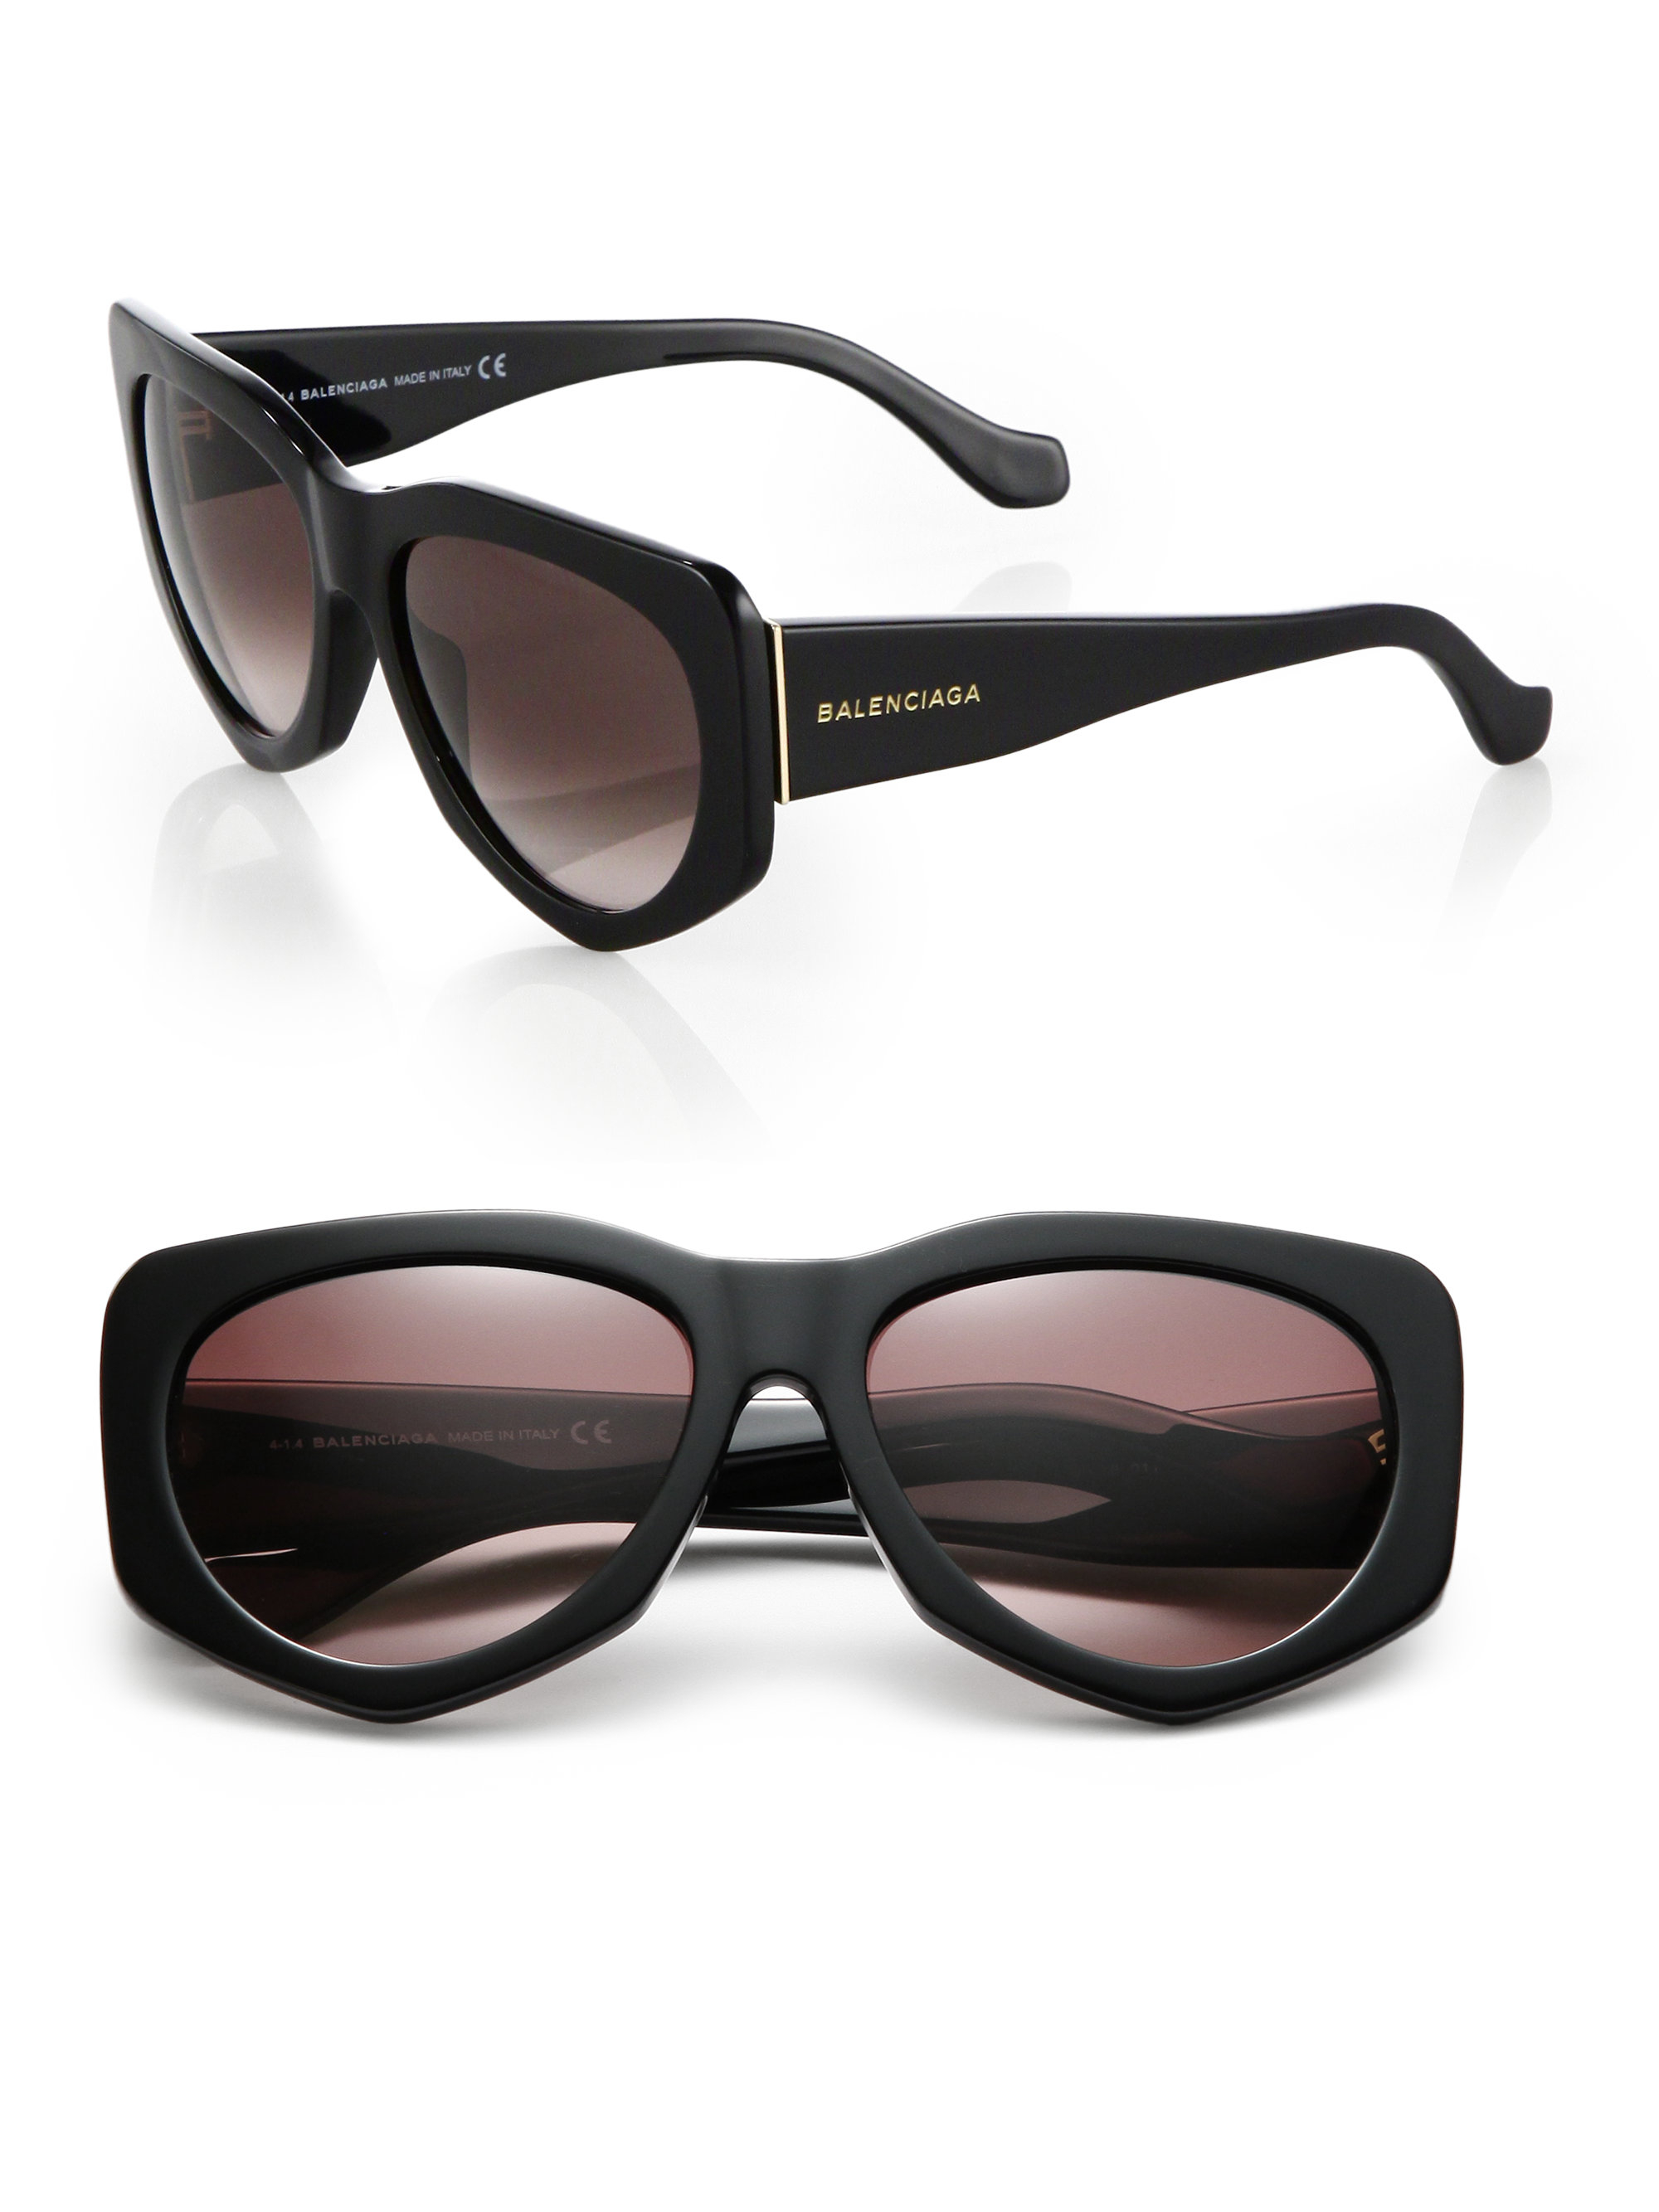 Balenciaga Optical Eyewear